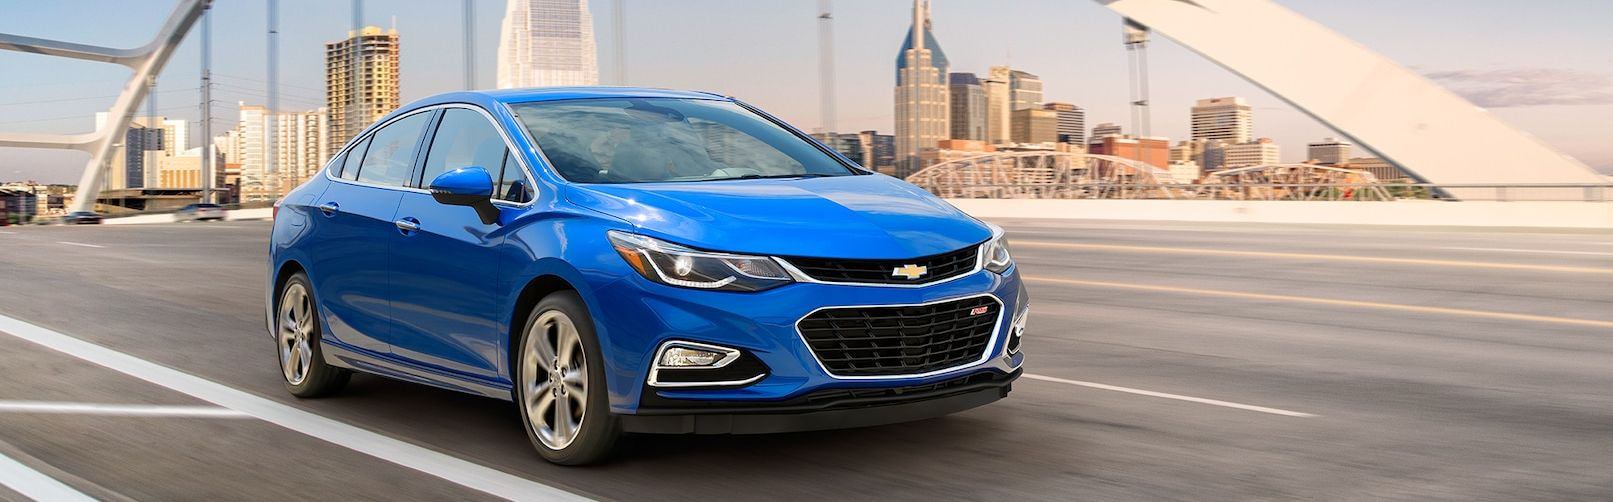 2018 Chevrolet Cruze vs 2018 Nissan Sentra near Lansing, IN